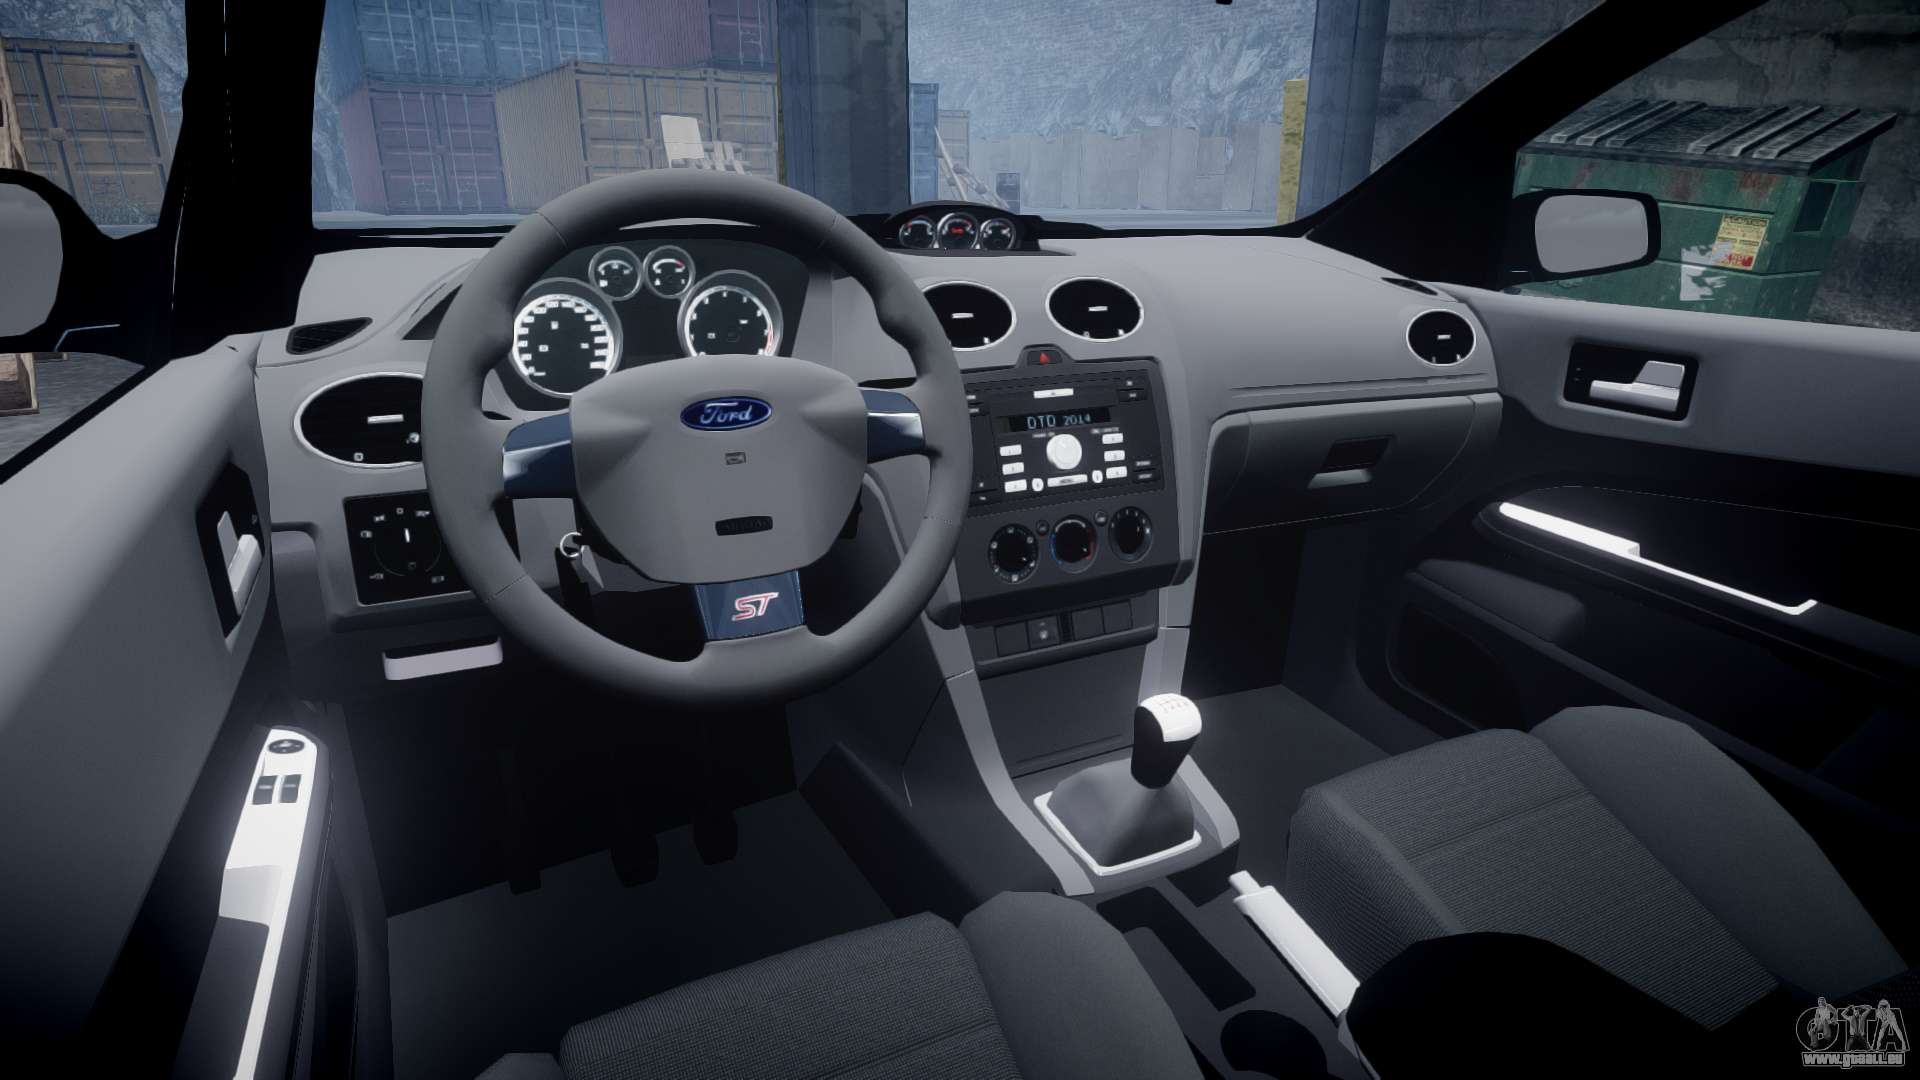 ford focus st 2005 rieger edition f r gta 4. Black Bedroom Furniture Sets. Home Design Ideas